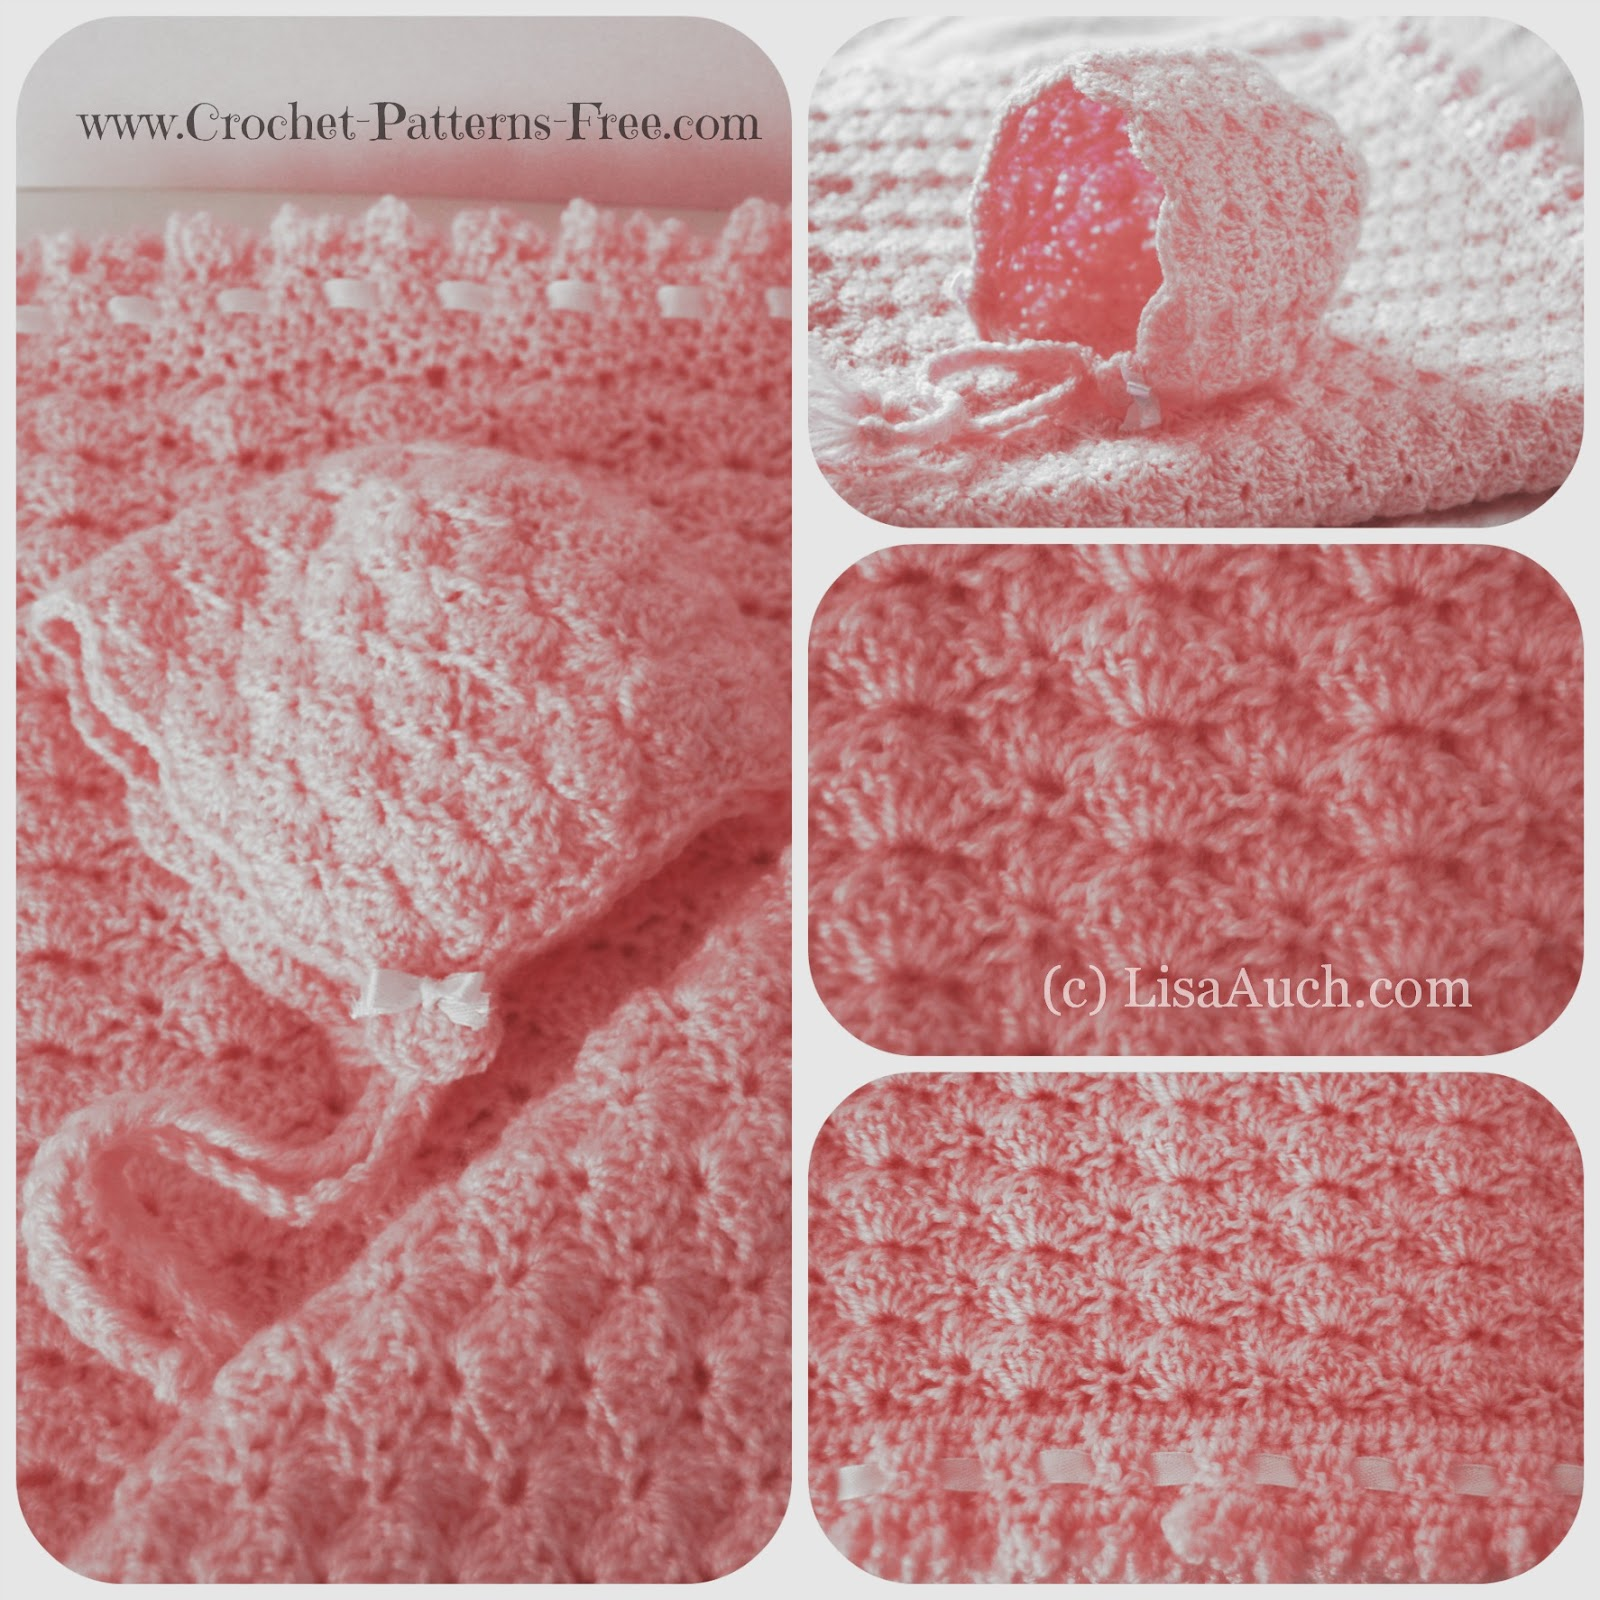 Find Free Crochet Patterns Online : Free Crochet Patterns and Designs by LisaAuch: Free ...